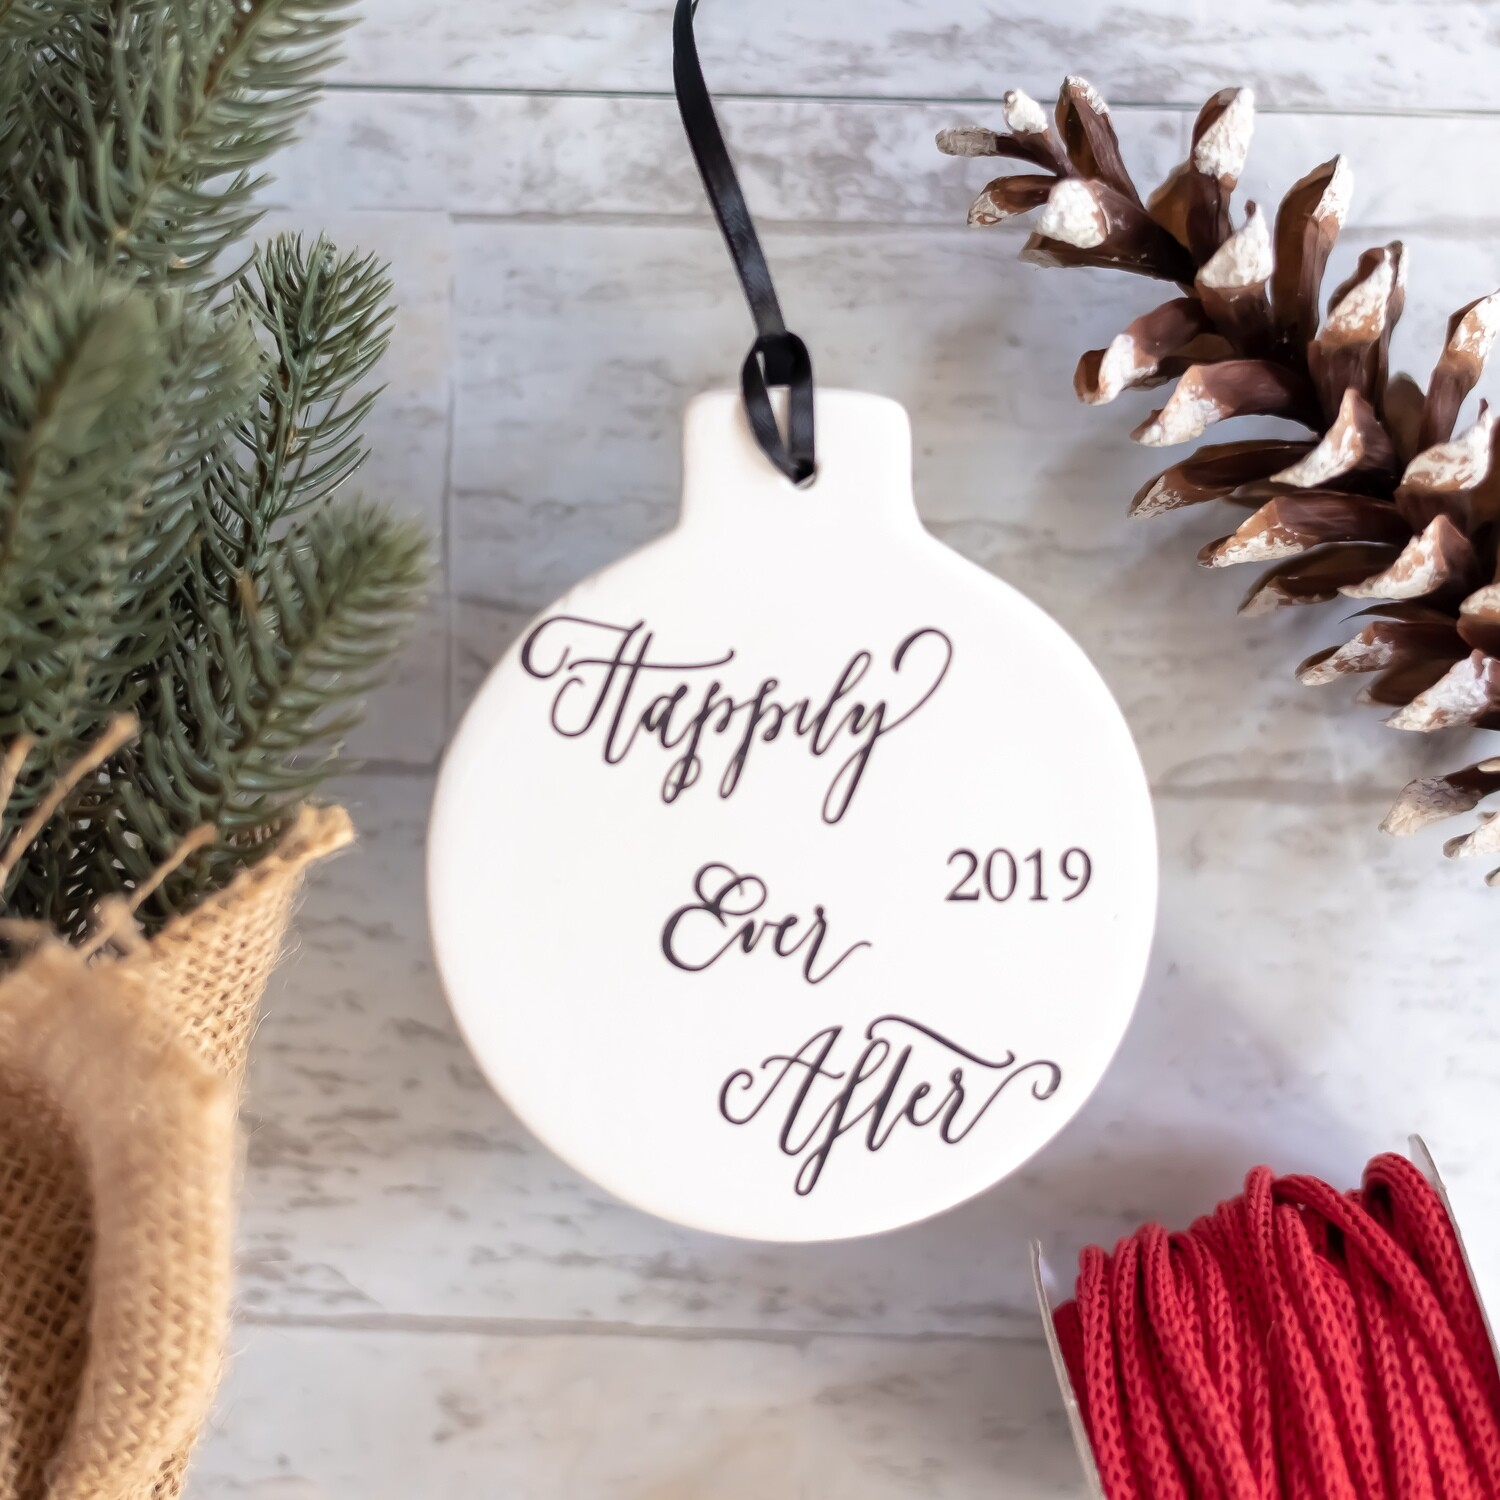 Happily Ever After 2019